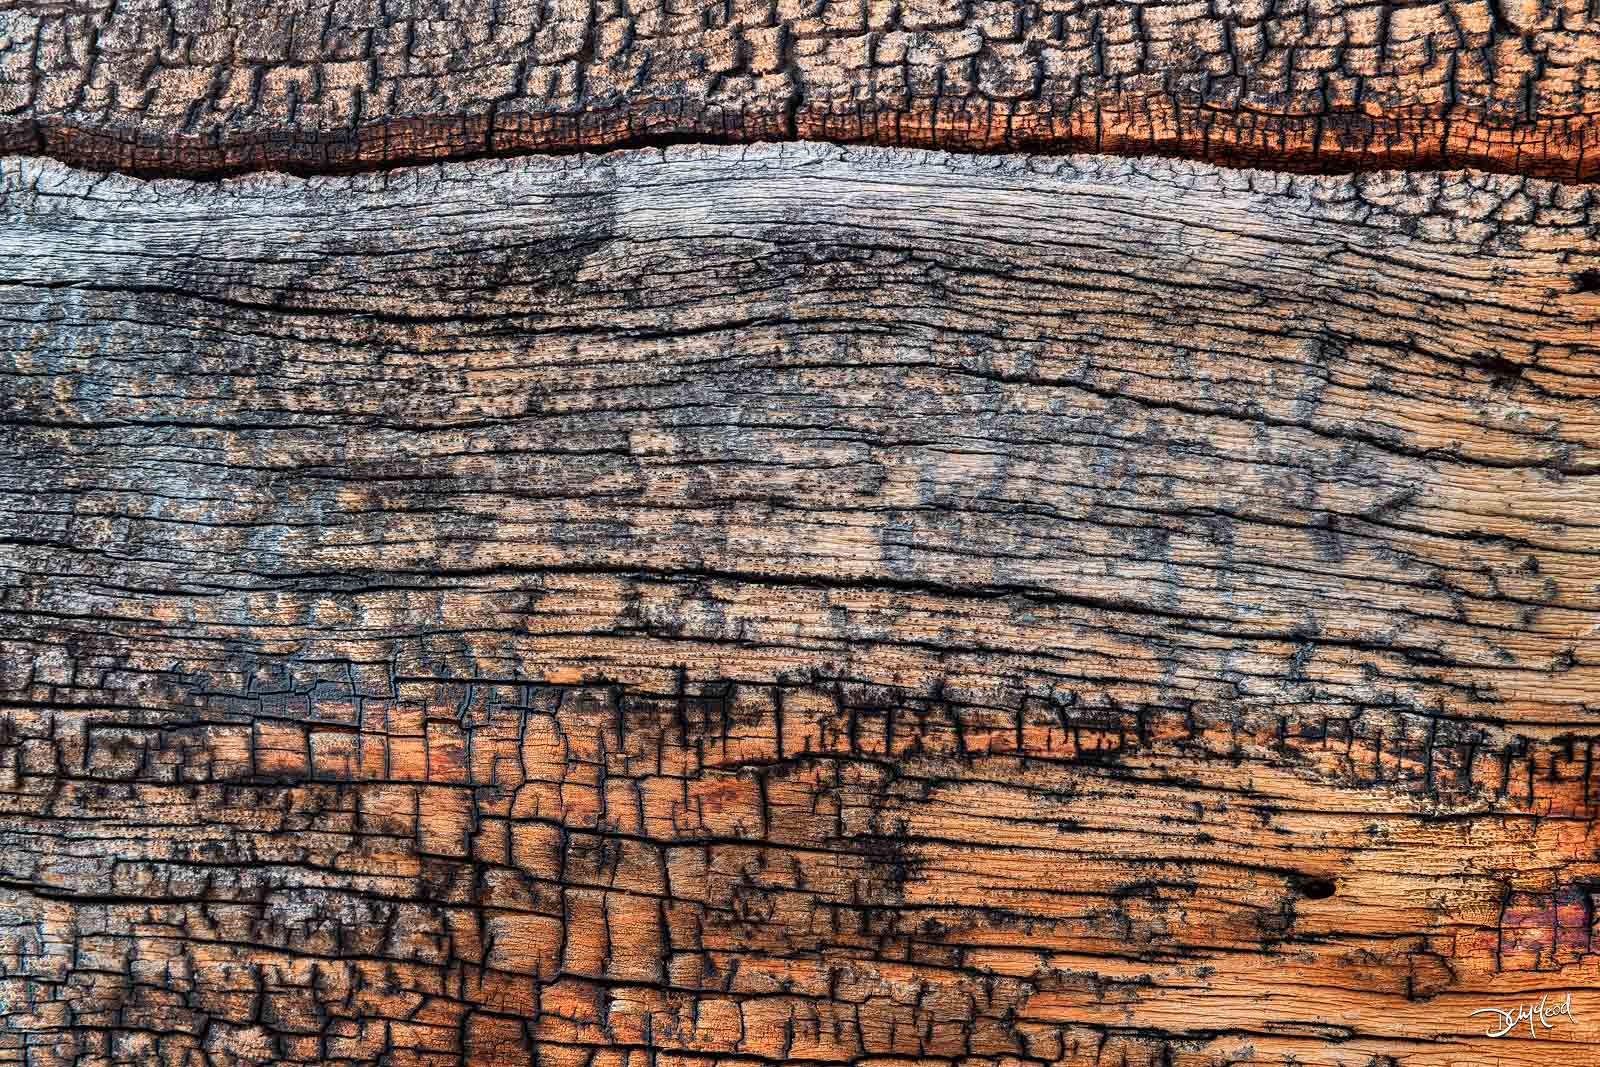 tree trunk, closeup, forests, banff, photo